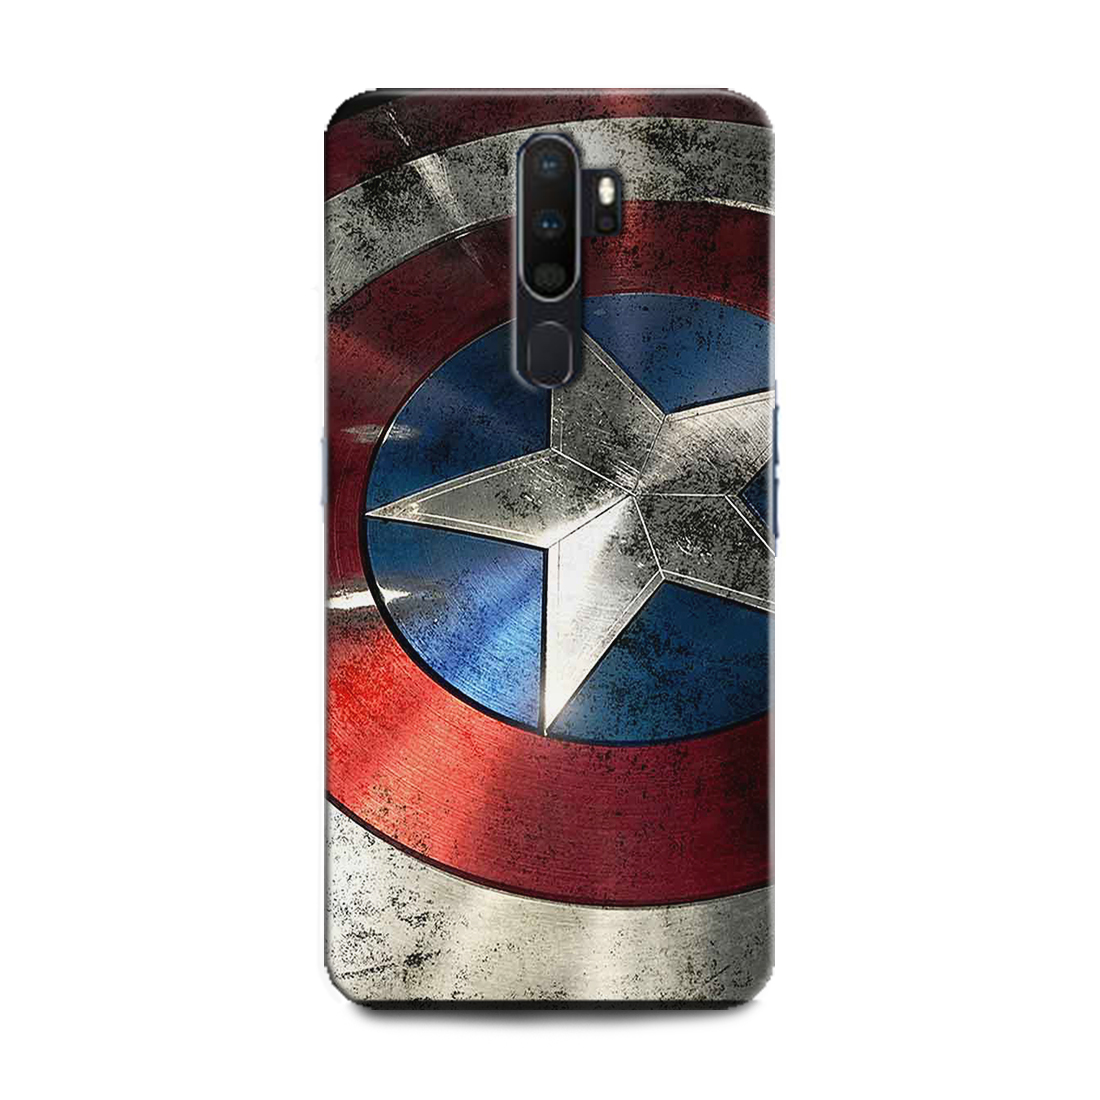 INDICRAFT Mobile Back Cover For Vivo V17 Pro / Vivo 1909 Hard Case (Captain America, Avenger, Captain America Shield, Marvel)